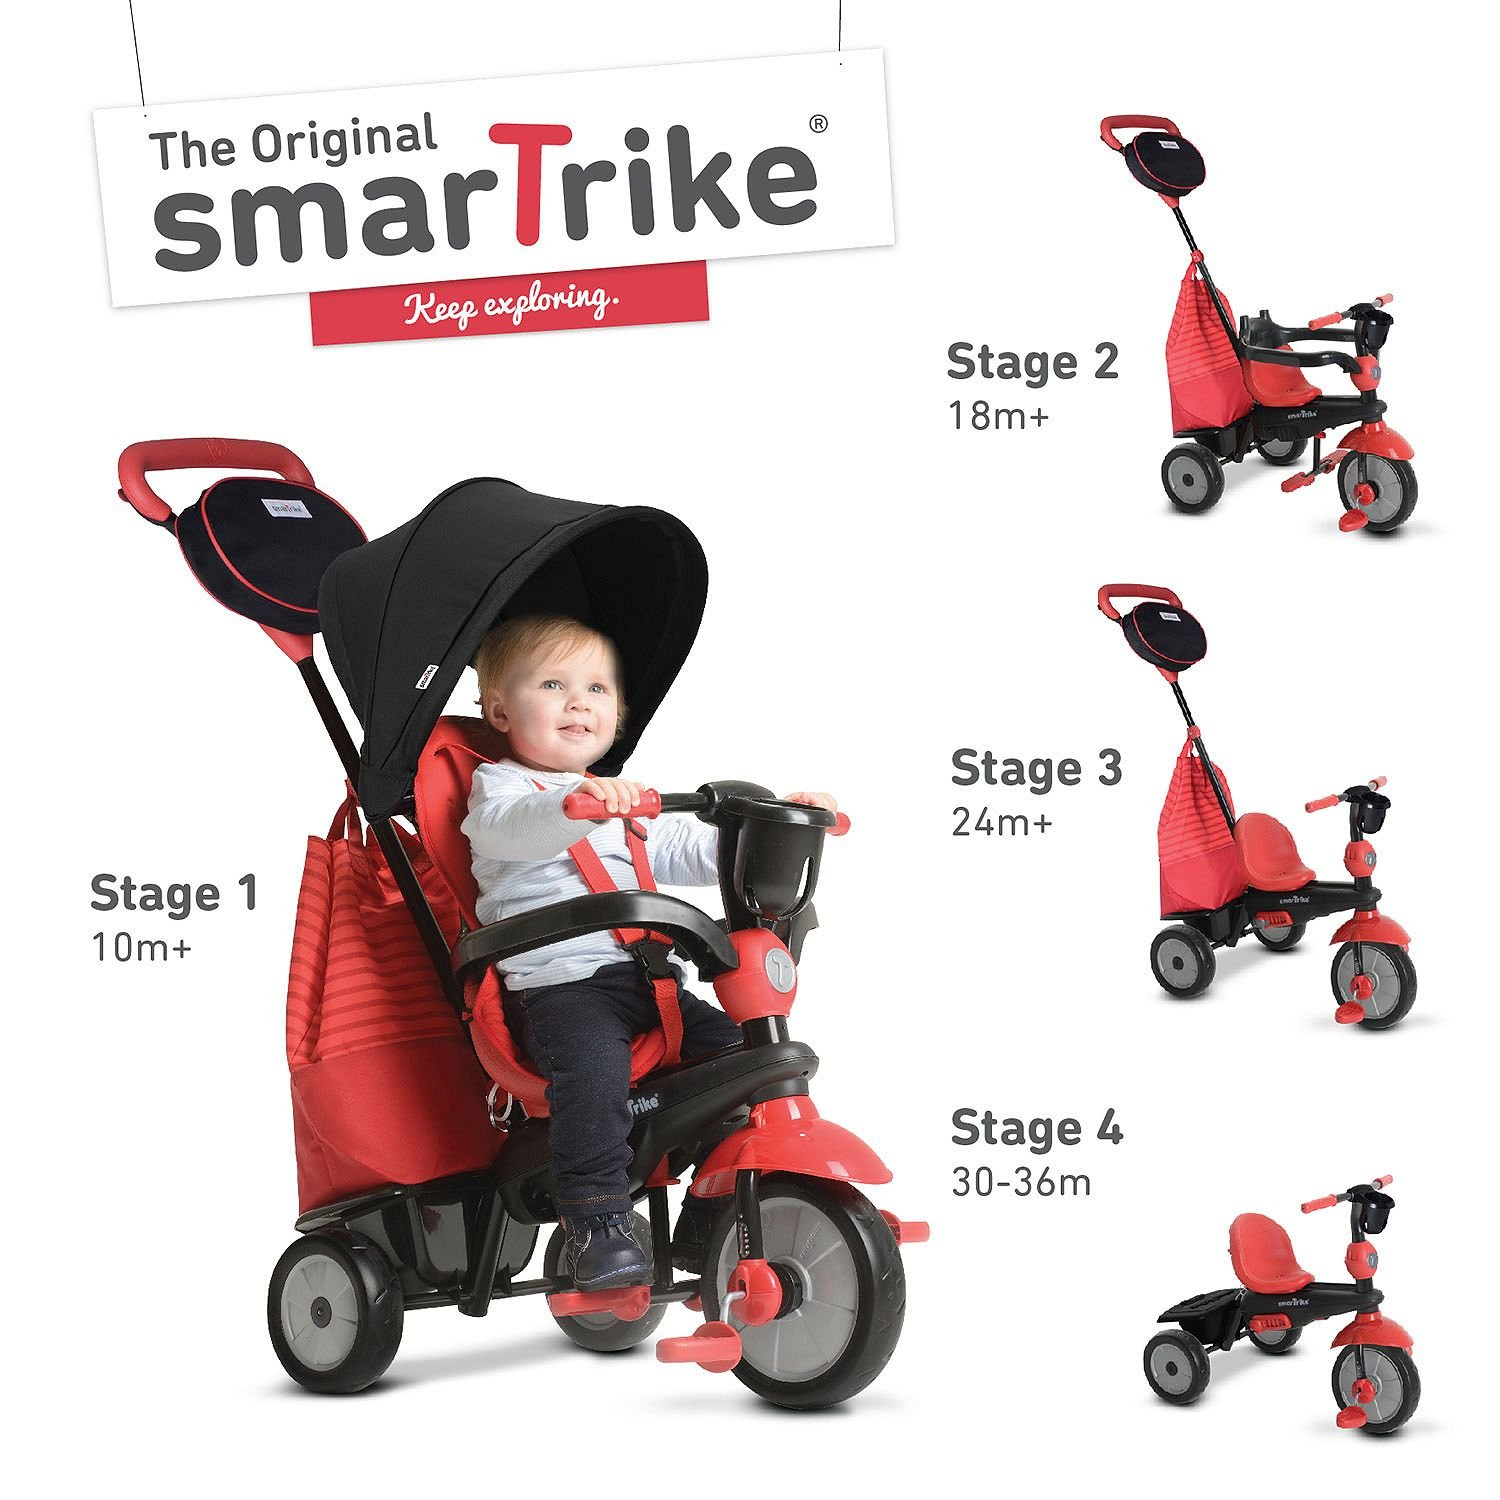 smarTrike Swing 4-in-1 Baby Trike Light-Weight 12 pound With Padded Soft Seat, High Back SUpport, 3 Point Safety Harness, shoulder pads, Cup Holder Storage Bag Canopy in Red